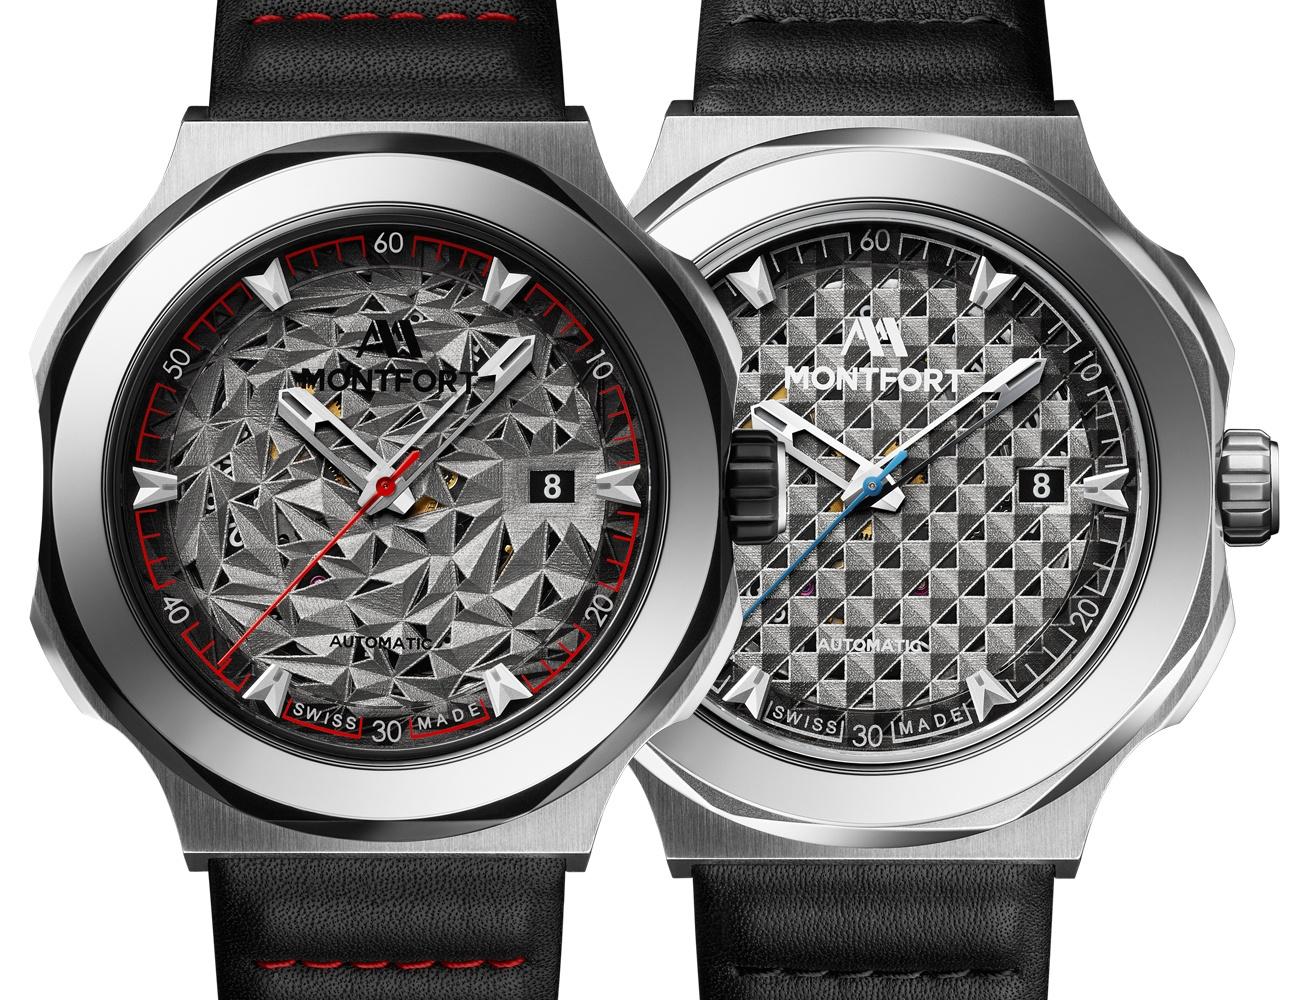 Montfort Watches – With a Super Stainless Steel Casing